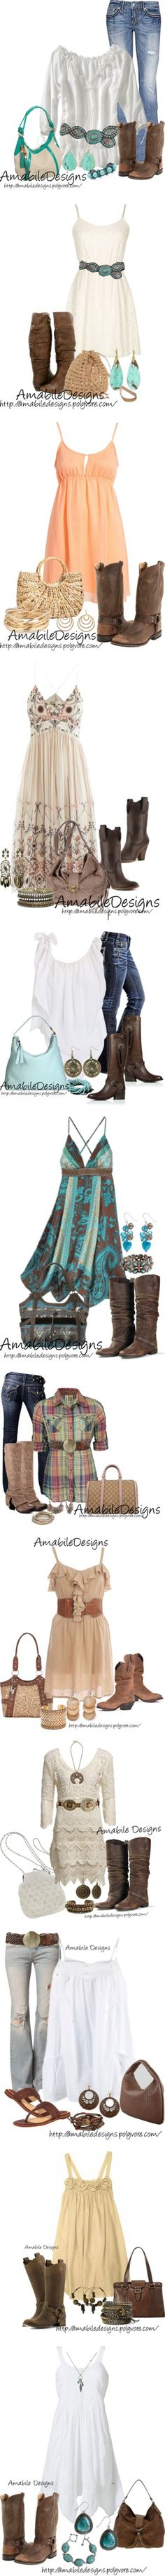 """Country Chic Look"" by amabiledesigns ❤ liked on Polyvore"